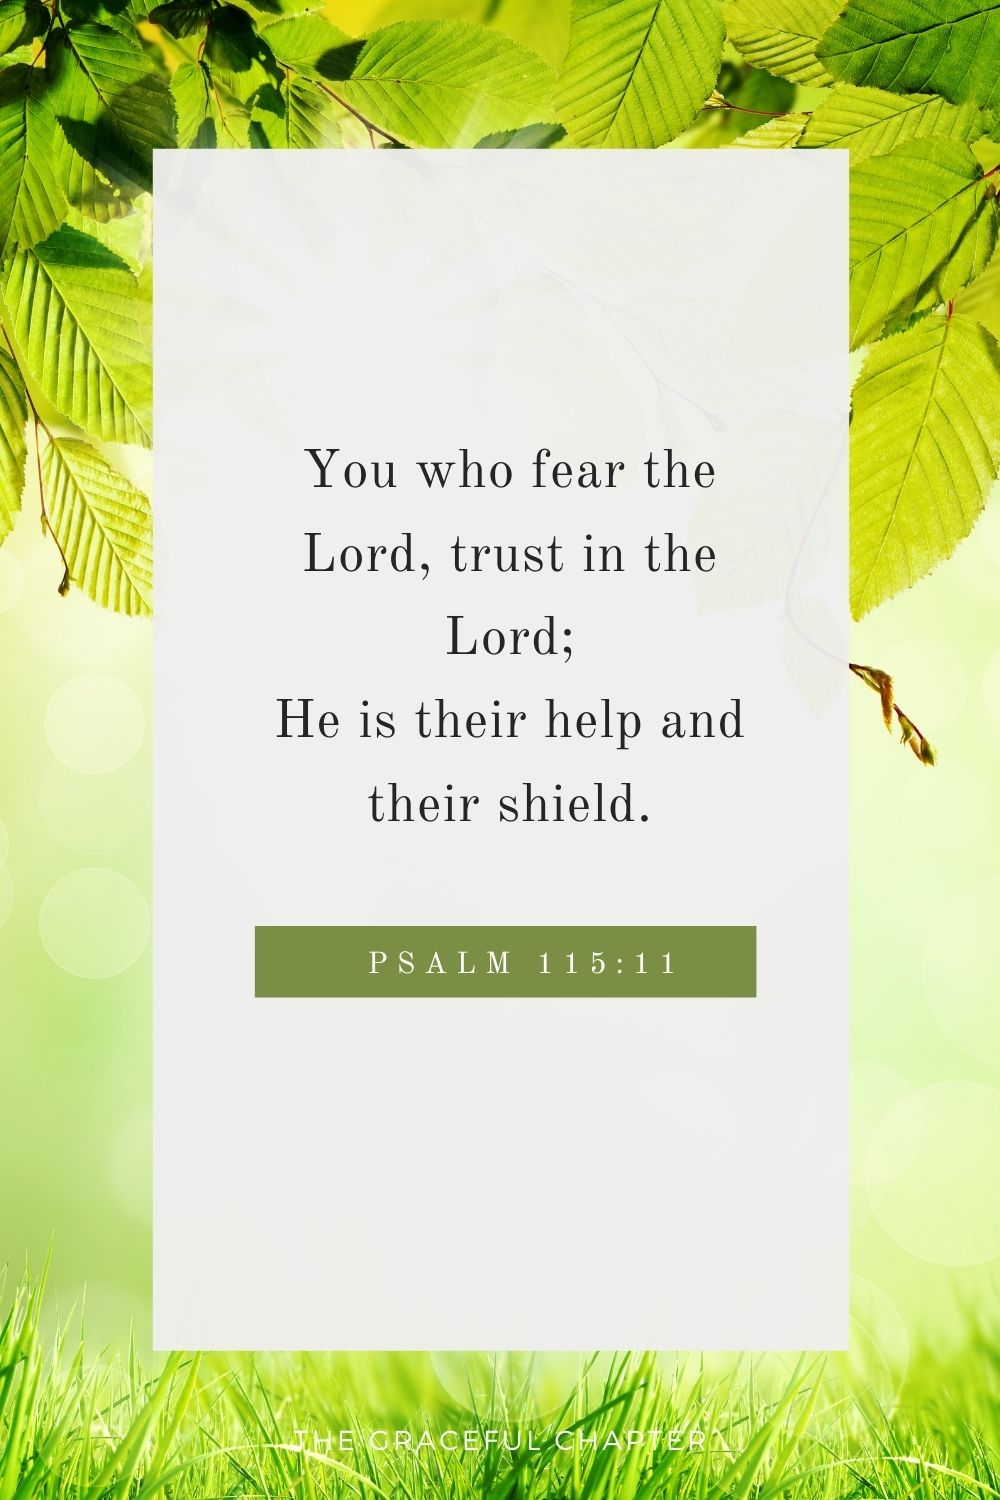 You who fear the Lord, trust in the Lord; He is their help and their shield. Psalm 115:11